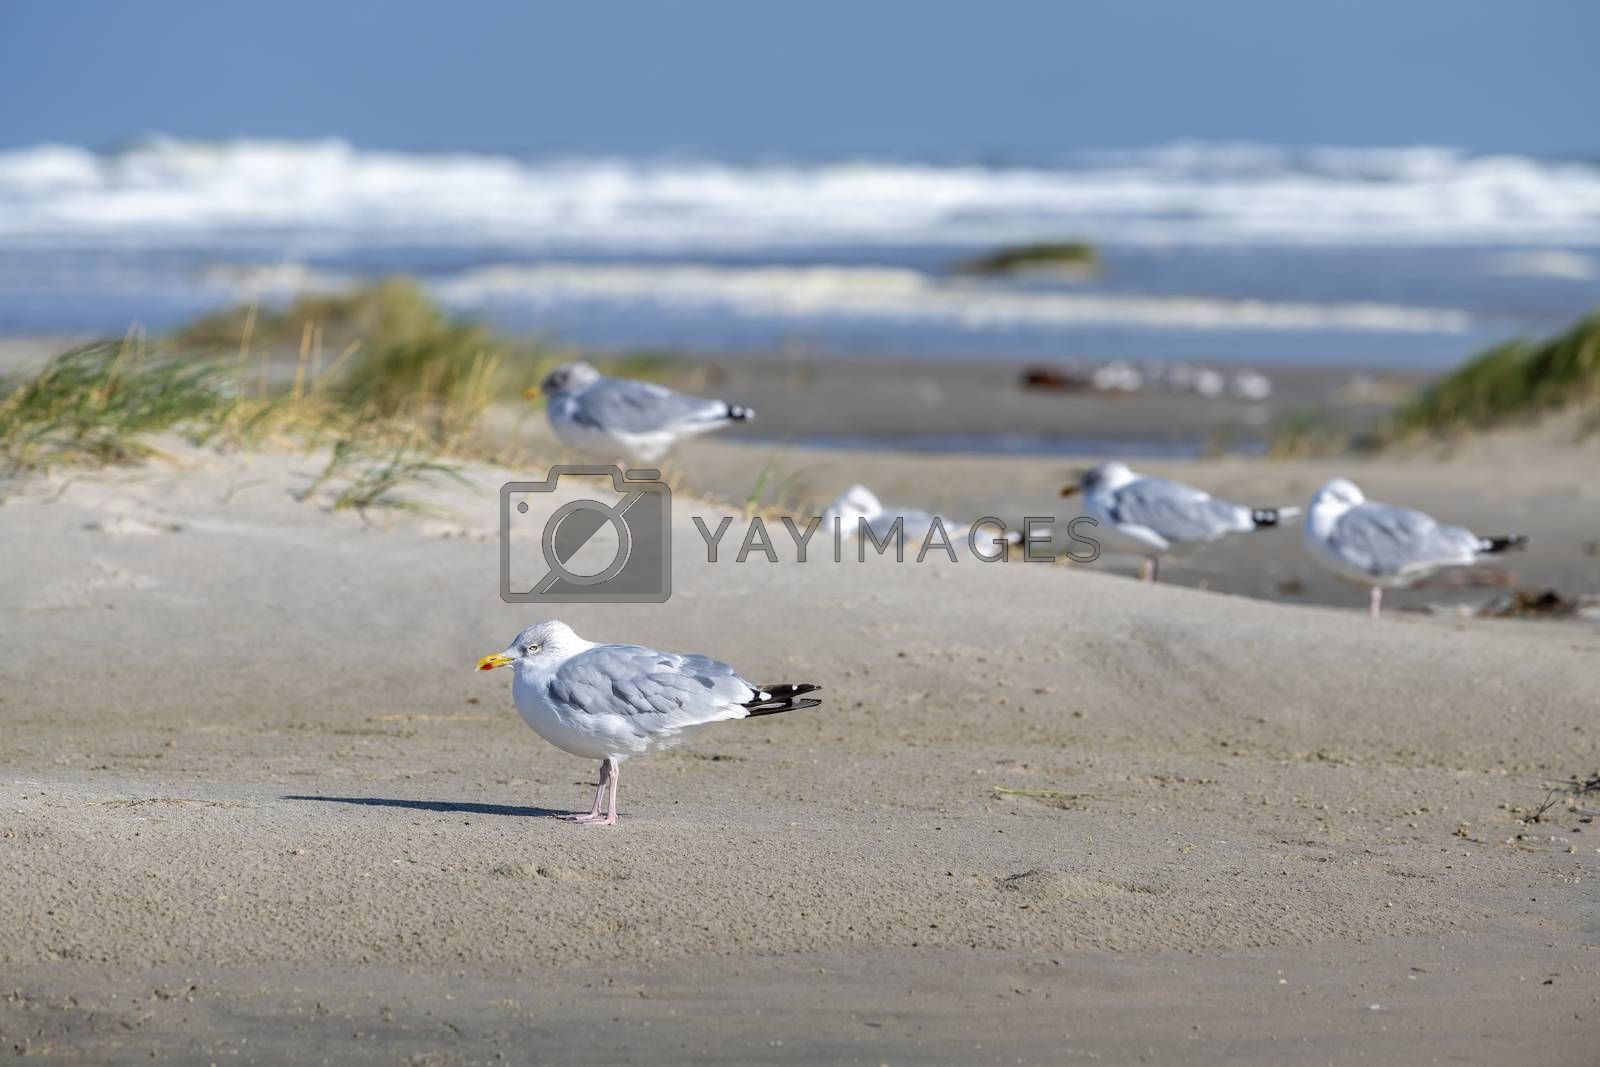 Sea gulls on the Beach of the frisian island of Terschelling   by Tofotografie